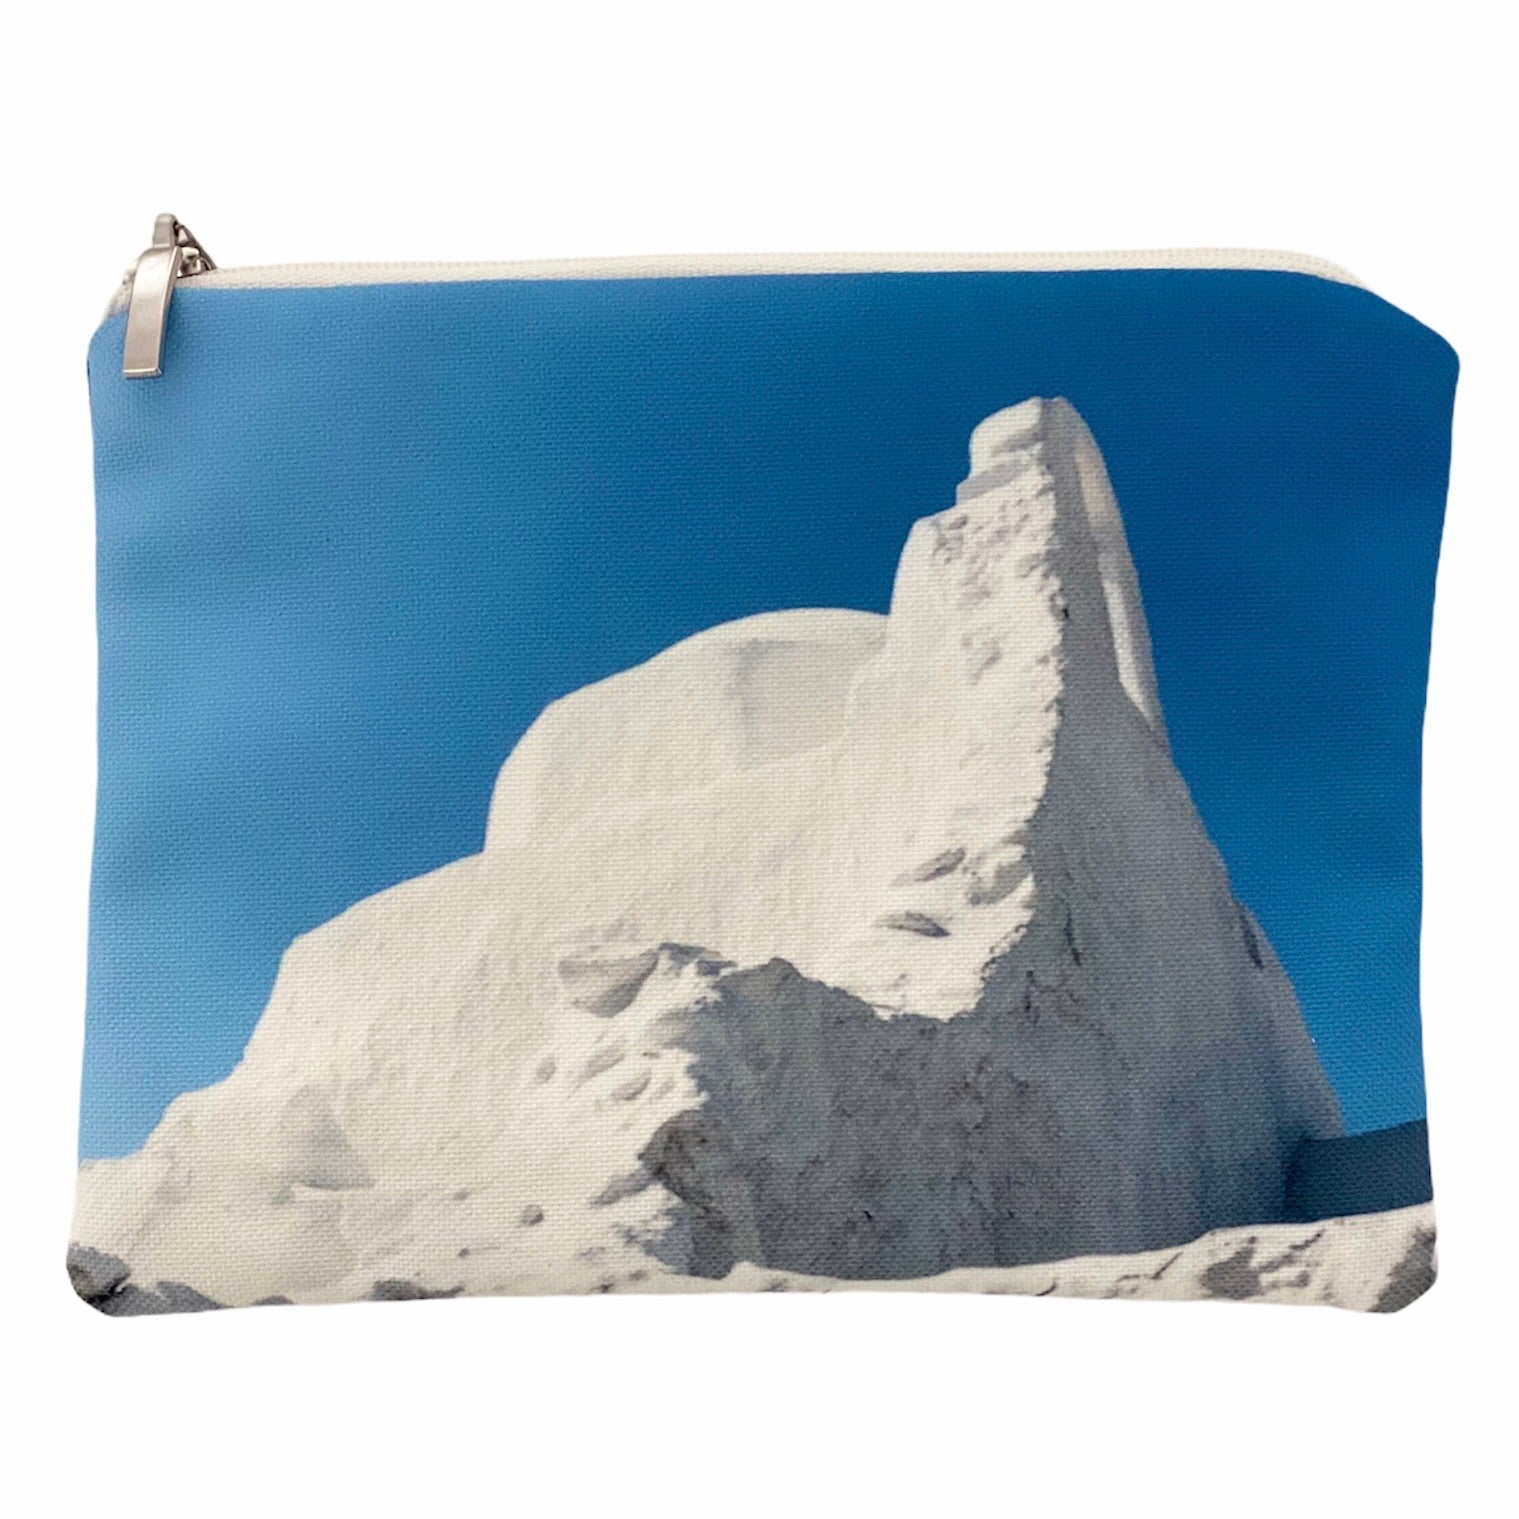 Island life - Cycladic Architecture bag